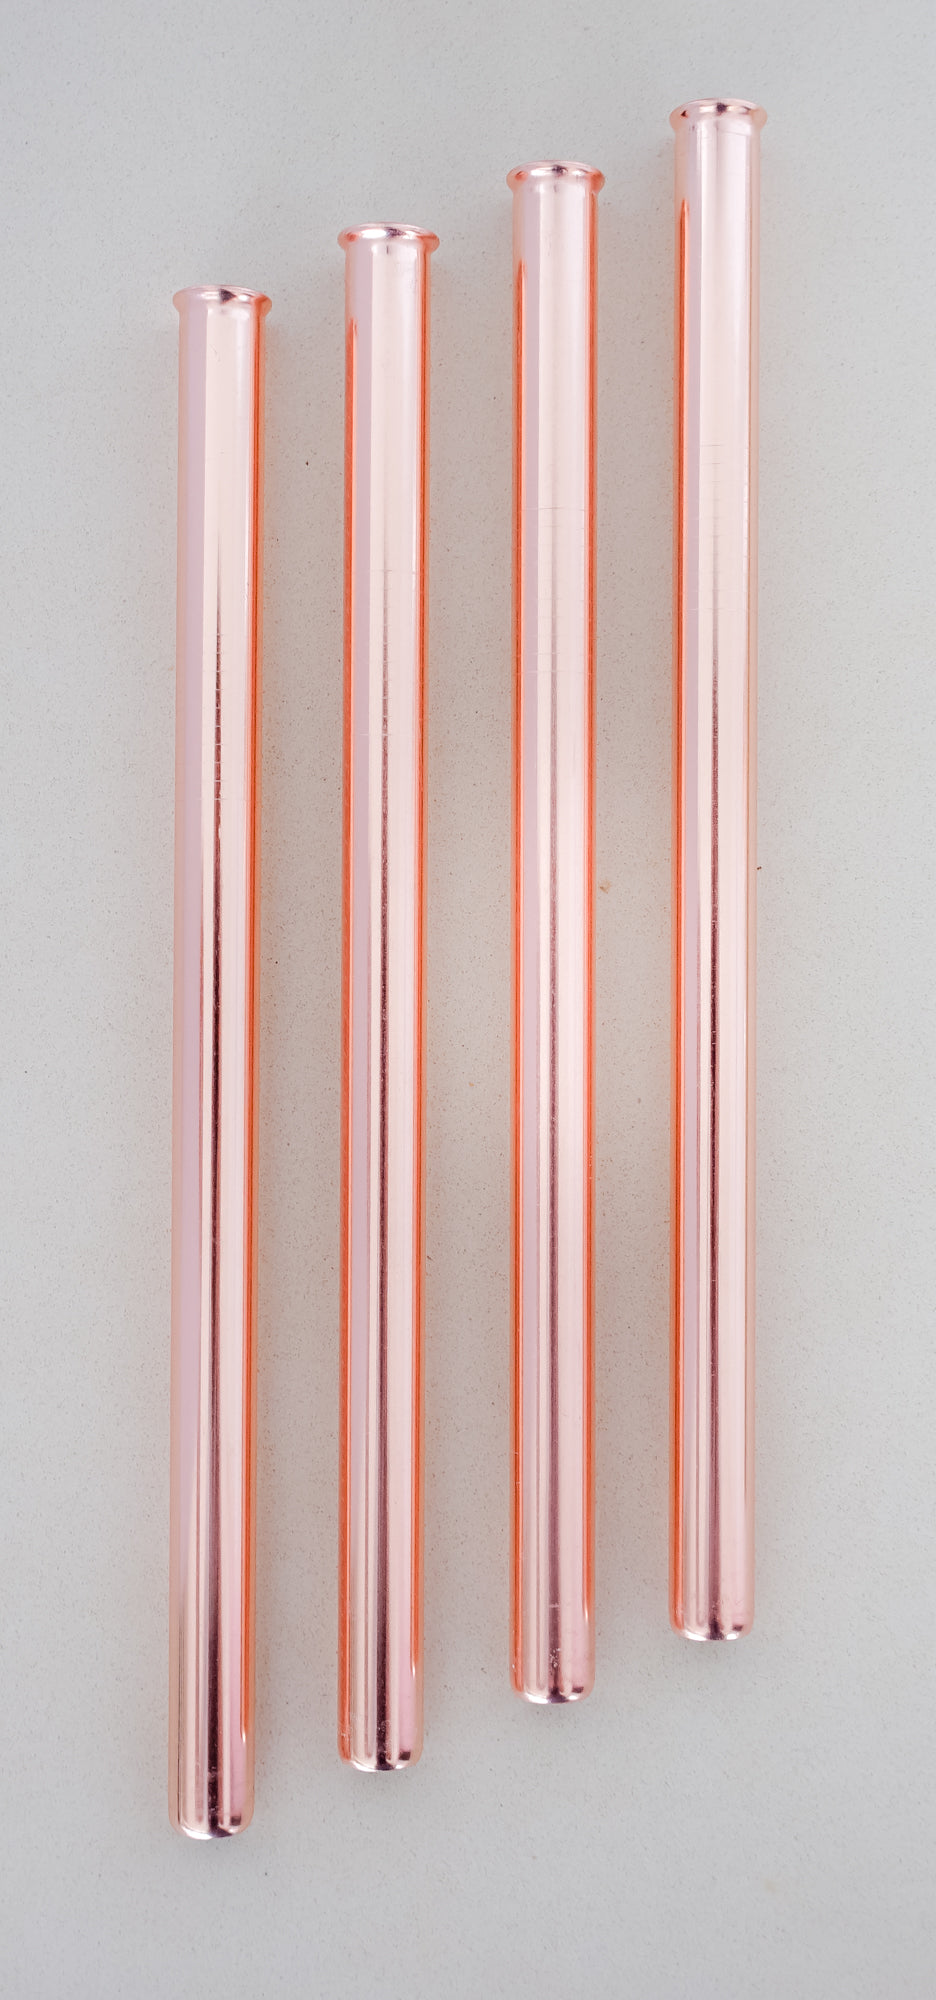 Rose Gold - 'Smoothie Style' Straw